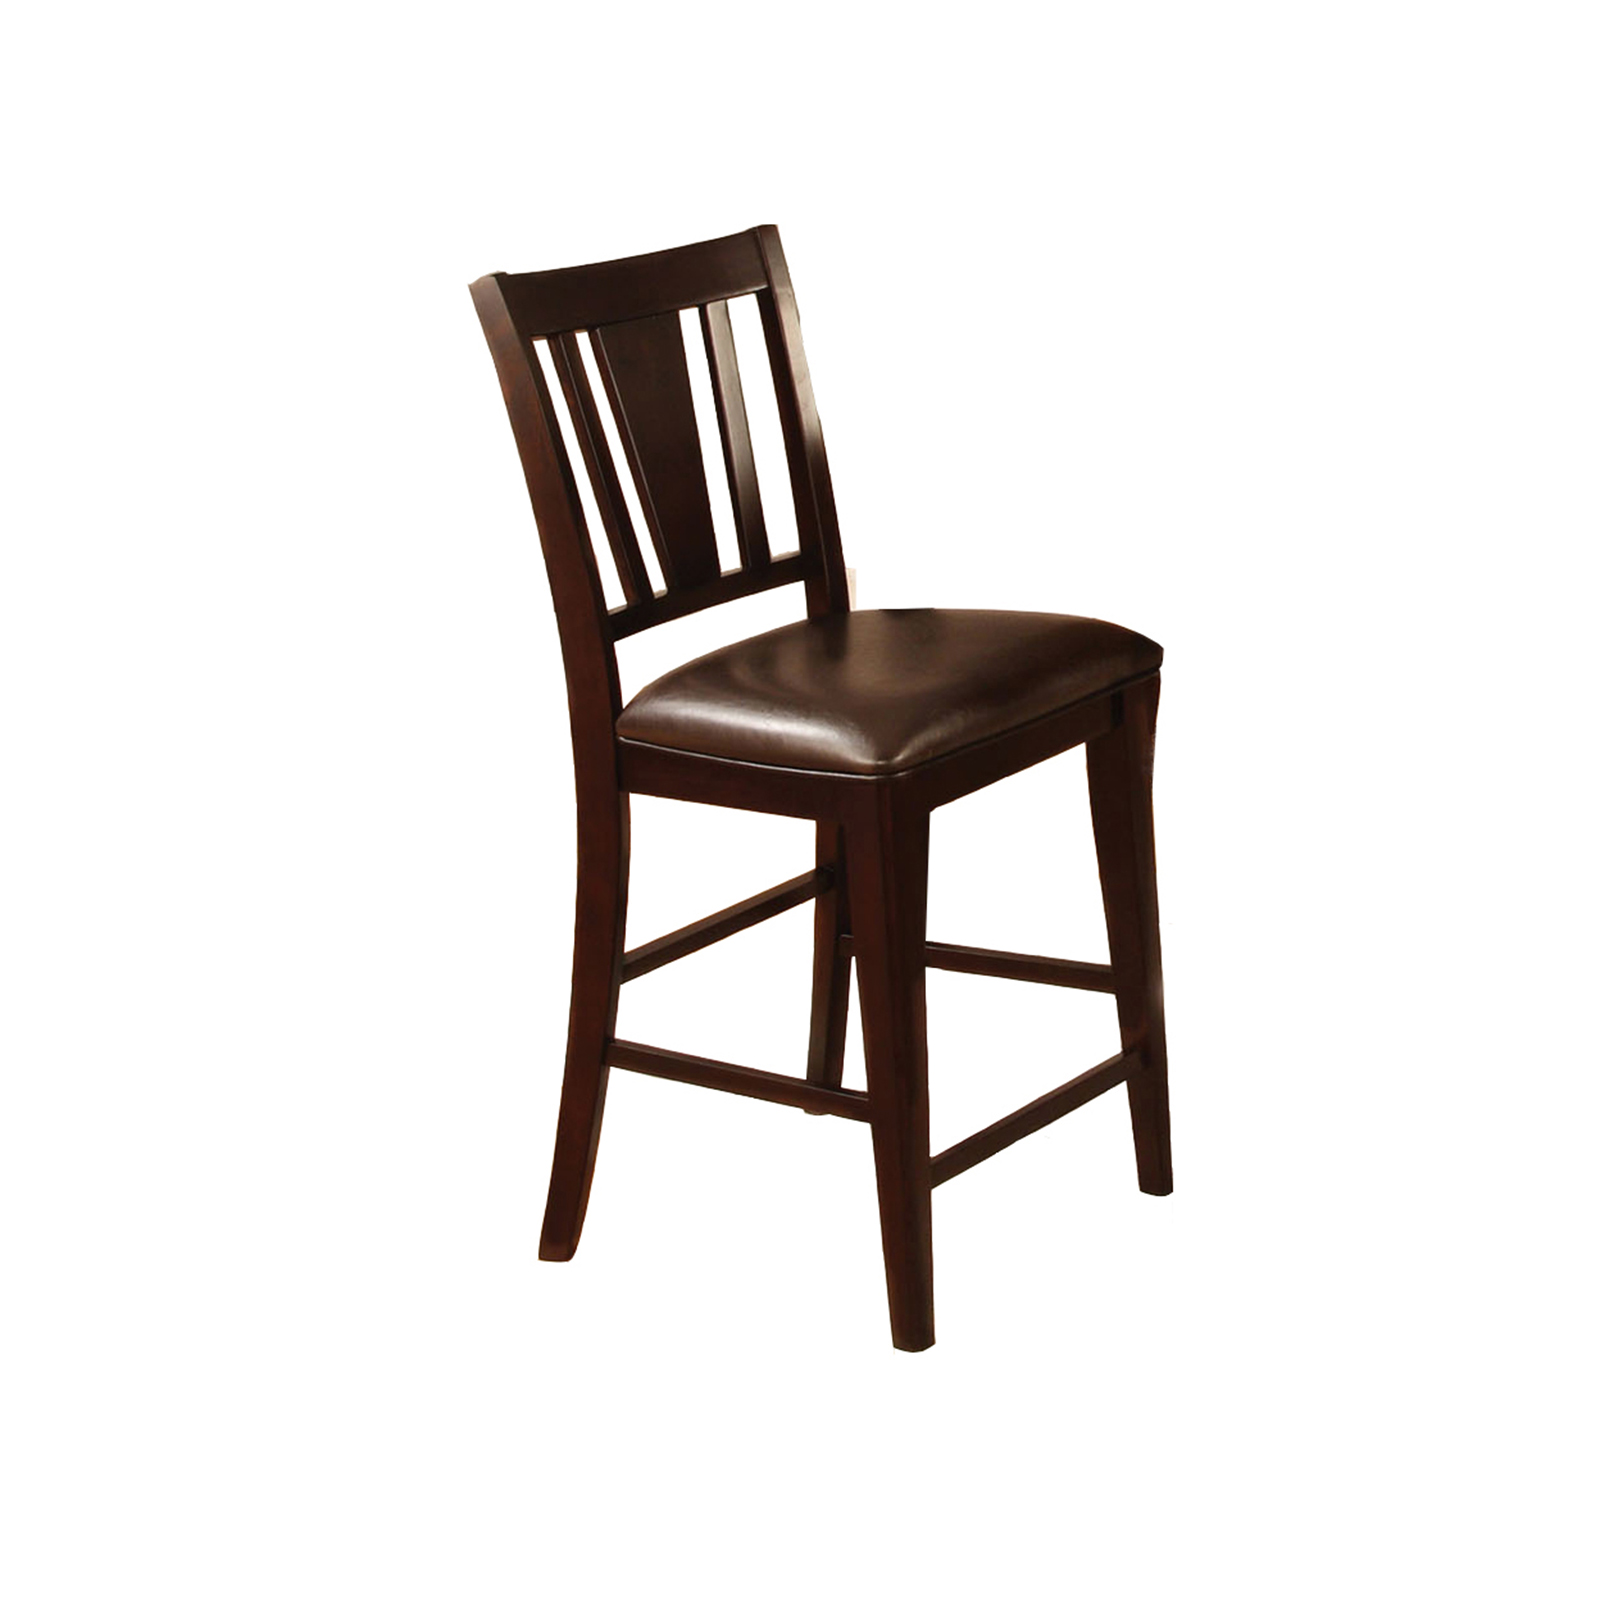 Kmart Dining Chairs Leatherette Dining Chair Kmart